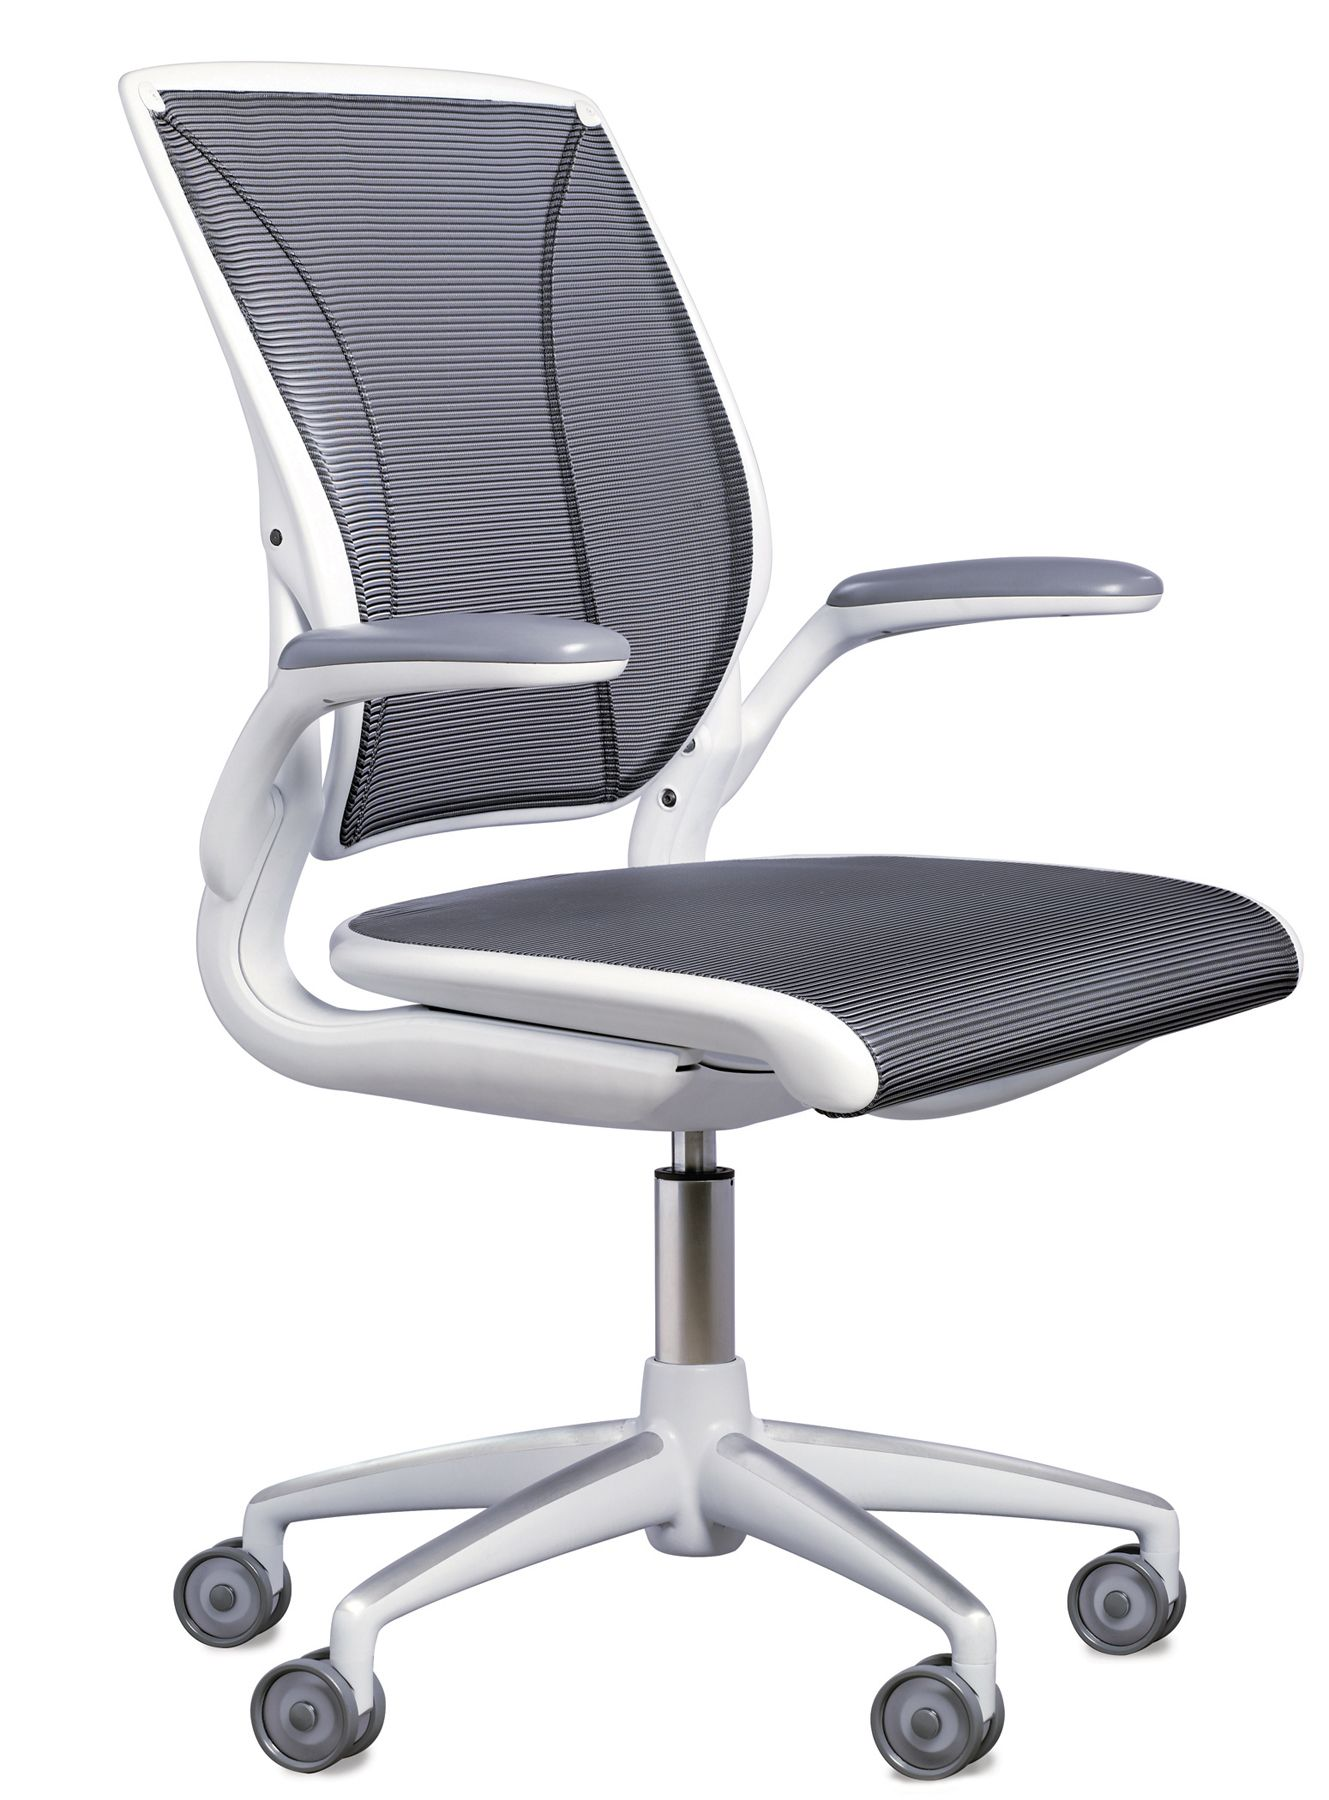 Humanscale Diffrient World Chair Humanscale Diffrient World Chair Education Egronomics Chair